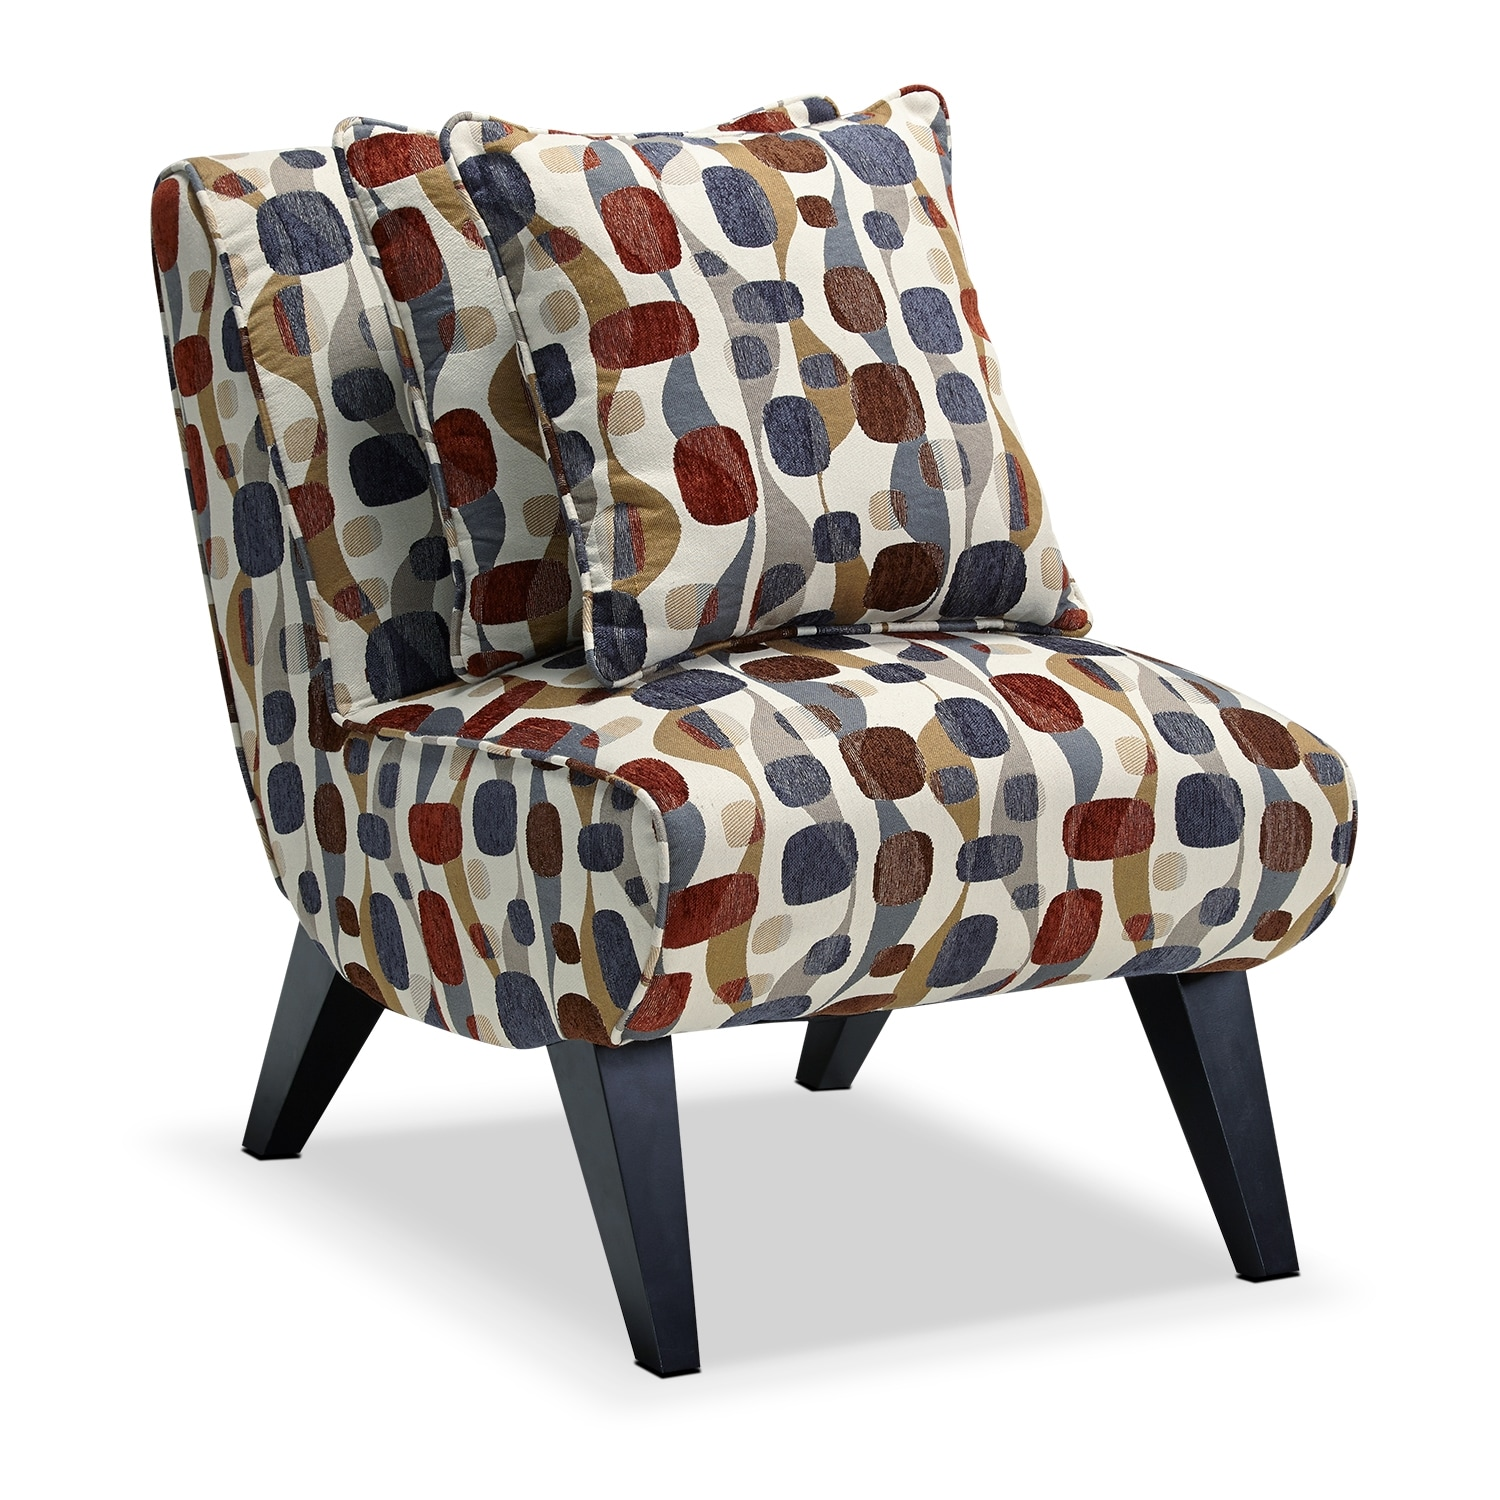 [Adrian Accent Accent Chair]